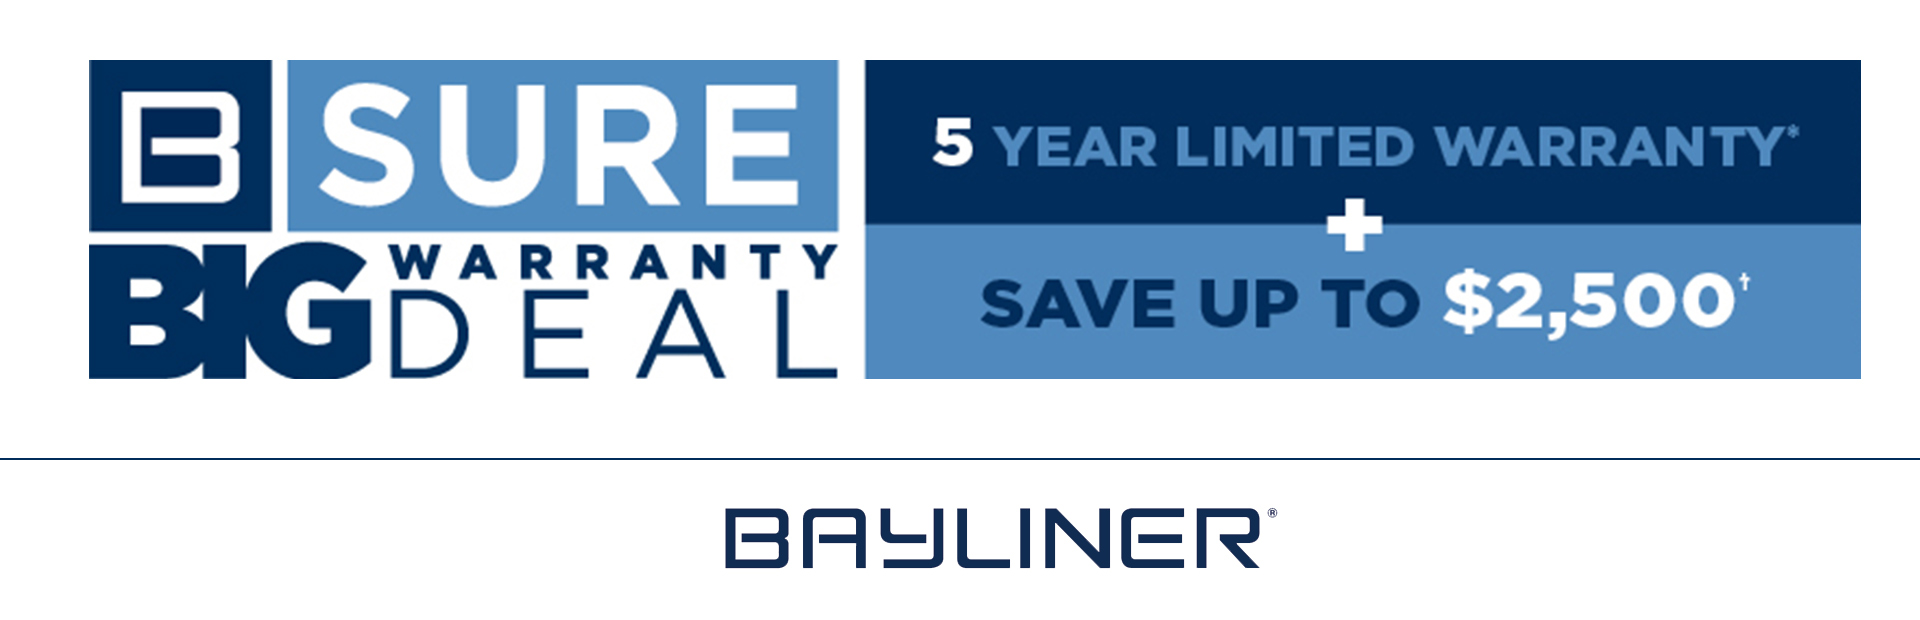 Bayliner: Bayliner's Big Deal